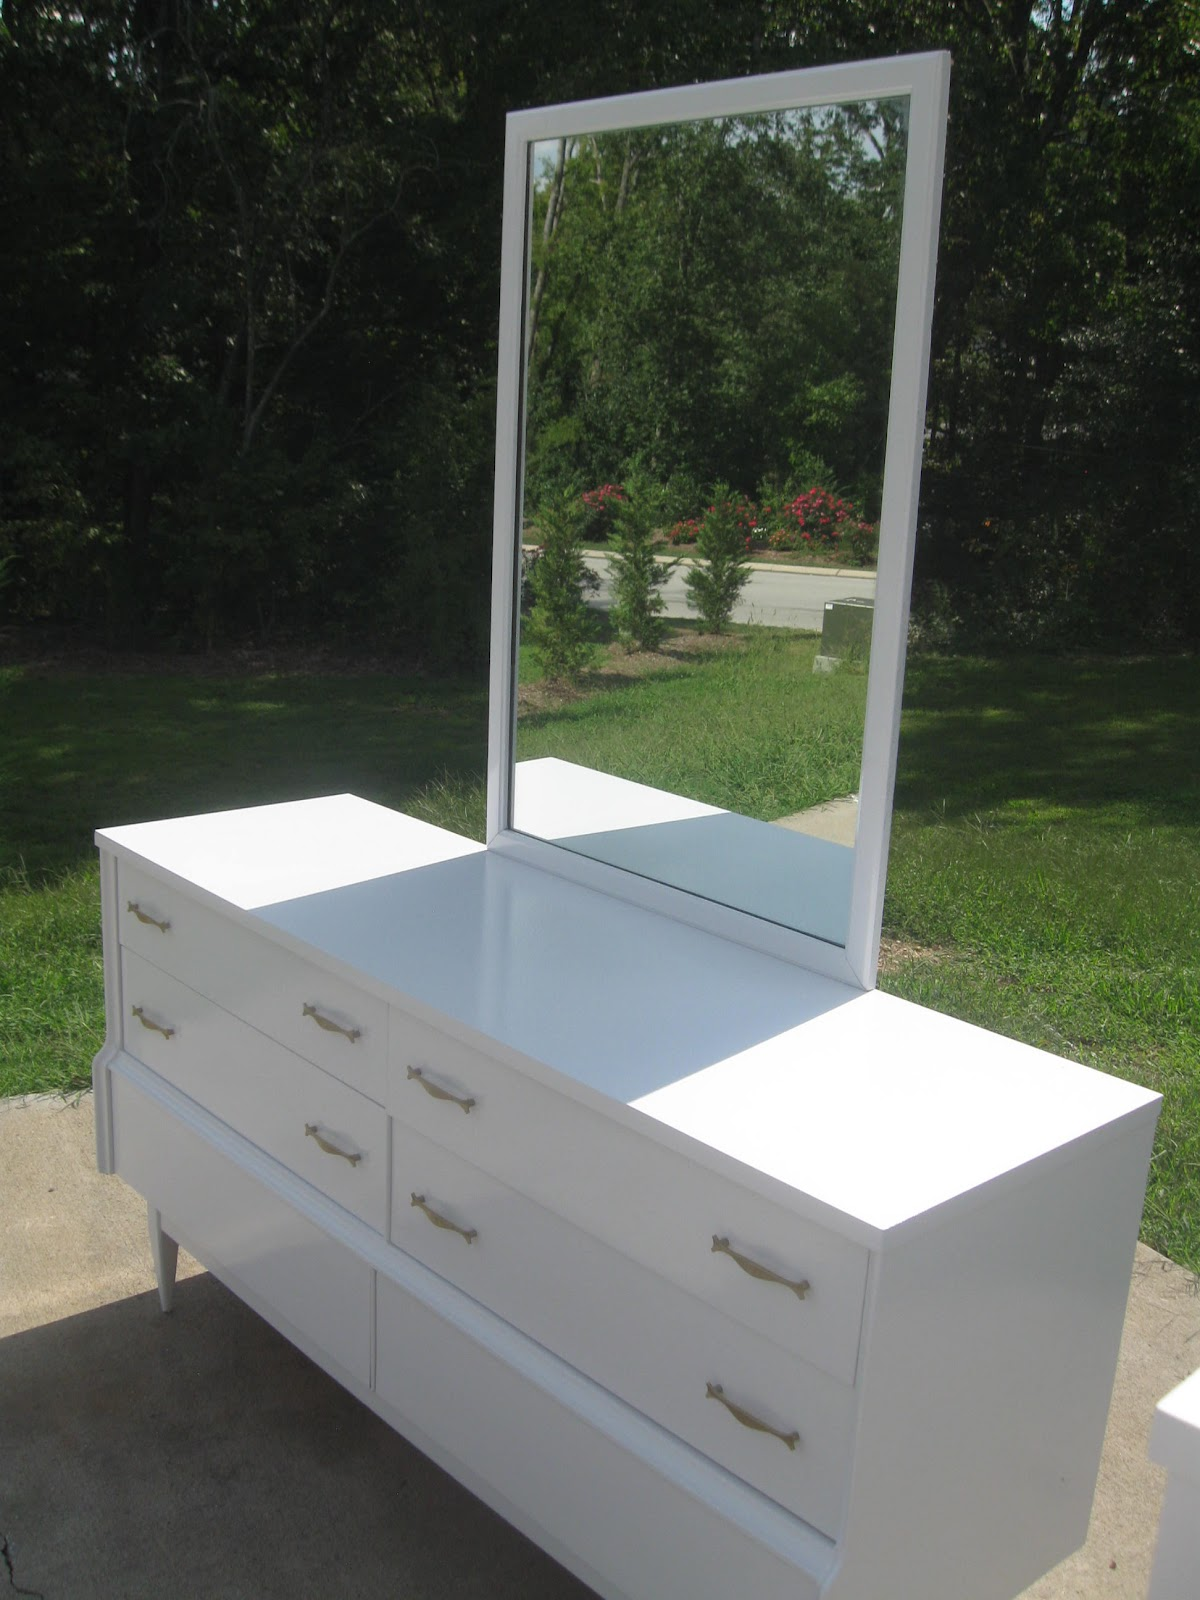 Modern Retro Bedroom Thats Not Junkrefurbished Recycled Furniture Mid Century